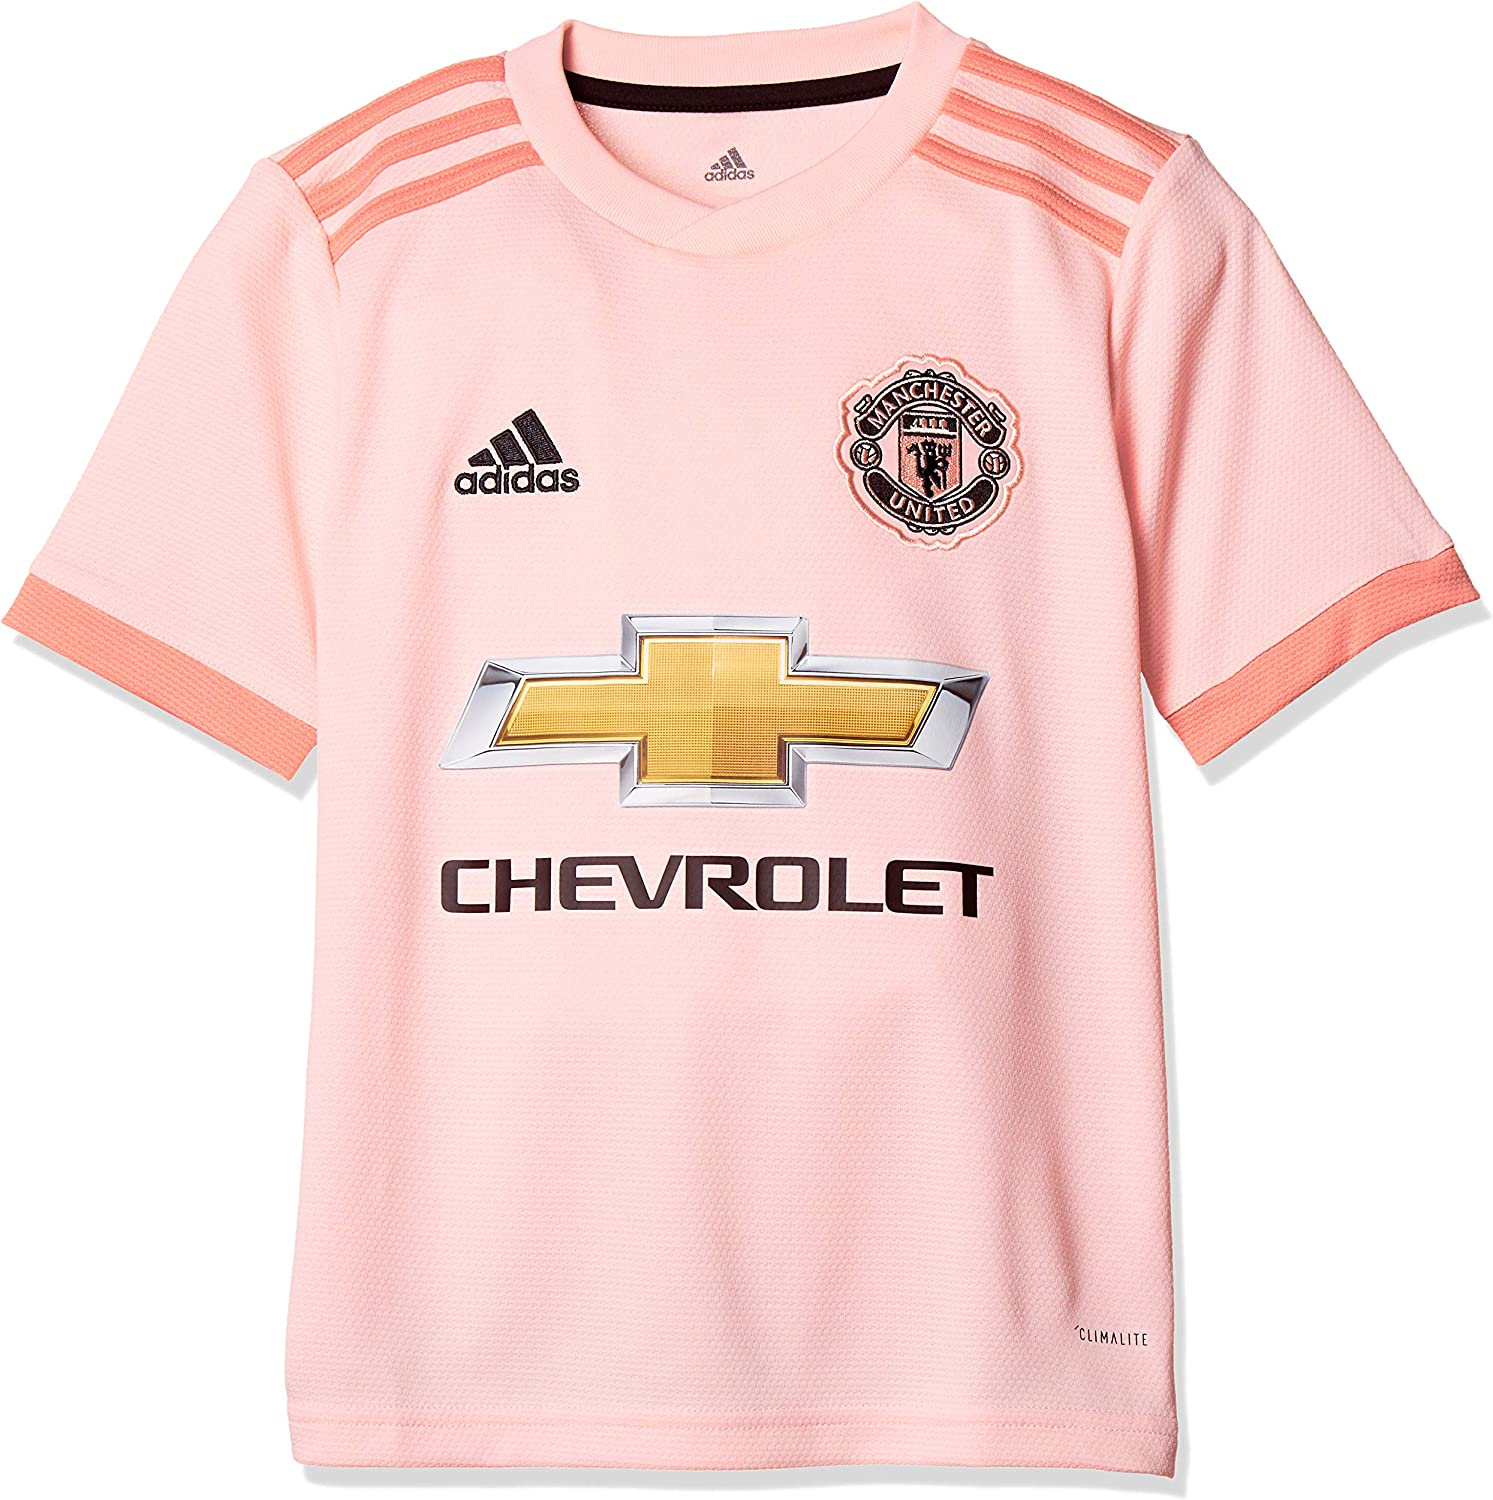 Amazon Com Adidas 2018 2019 Man Utd Away Football Soccer T Shirt Jersey Kids Clothing